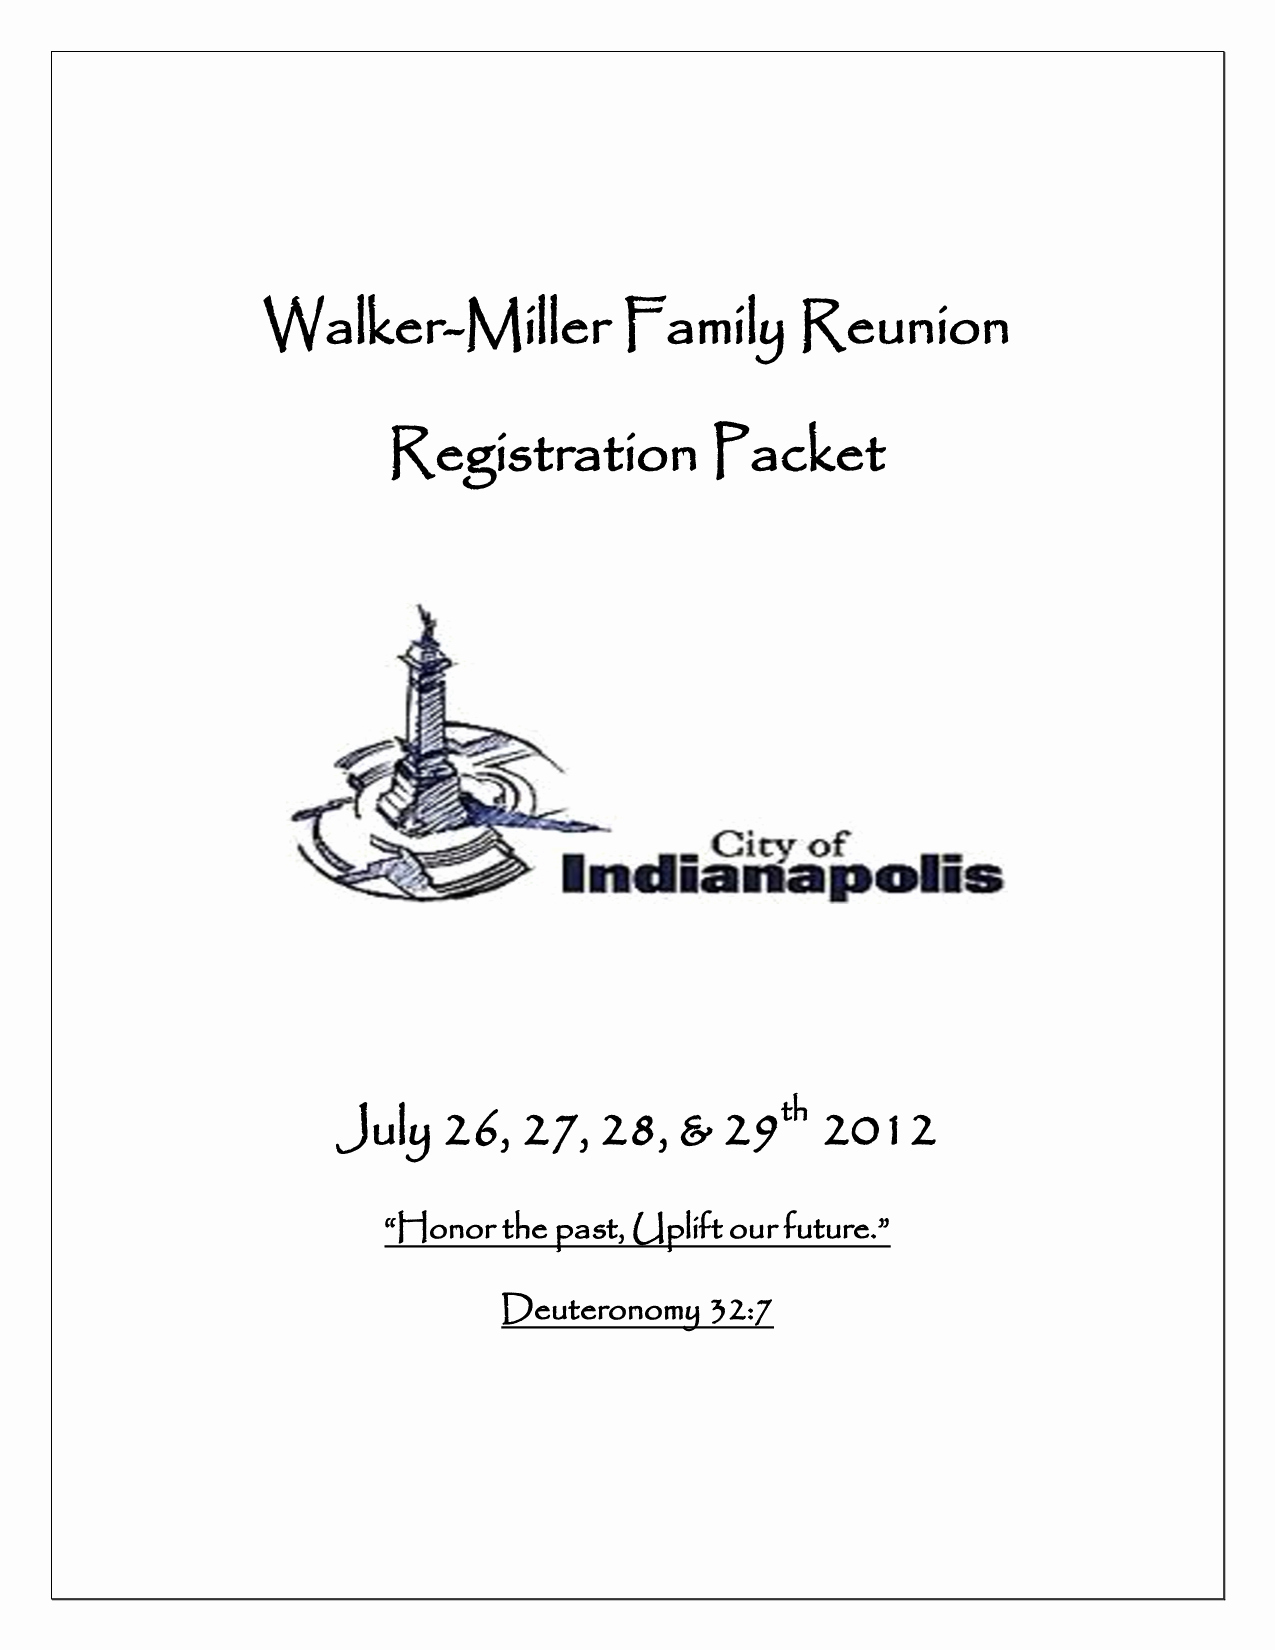 Class Reunion Registration form Template Beautiful Family Reunion Planners